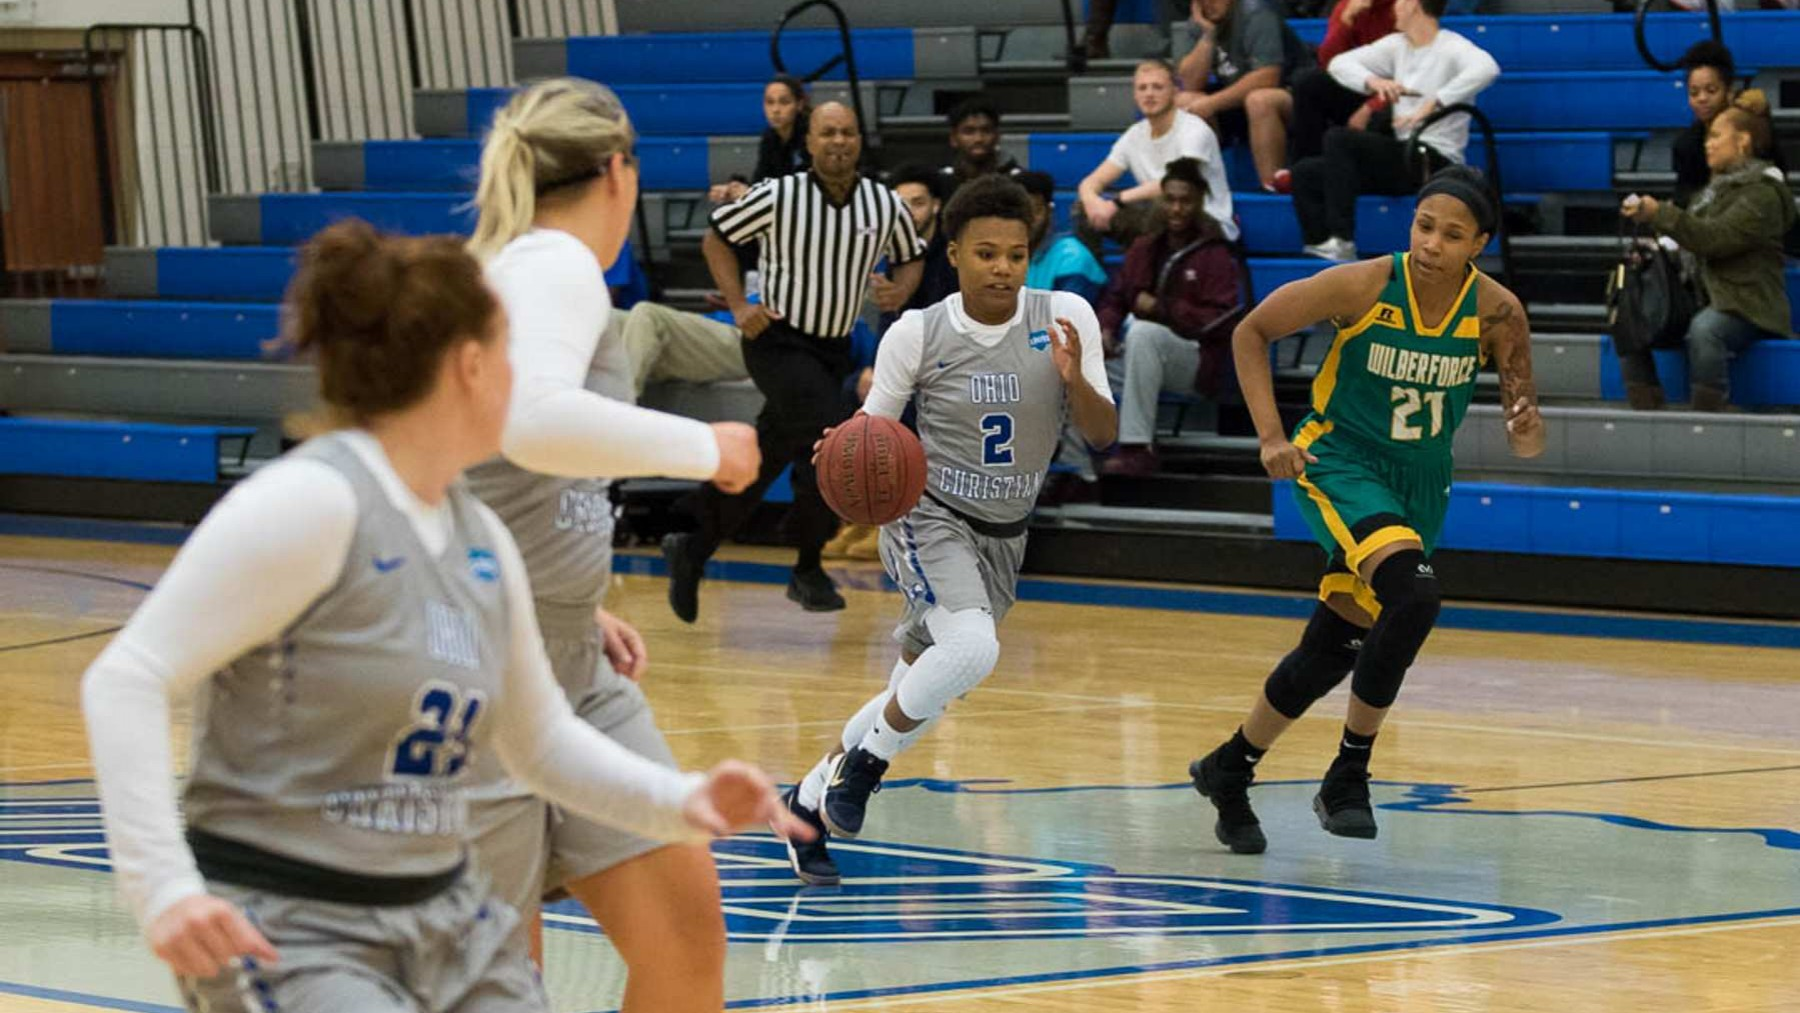 Lady Trailblazers Sweep Thunder Hawks, Move to 6-1 image